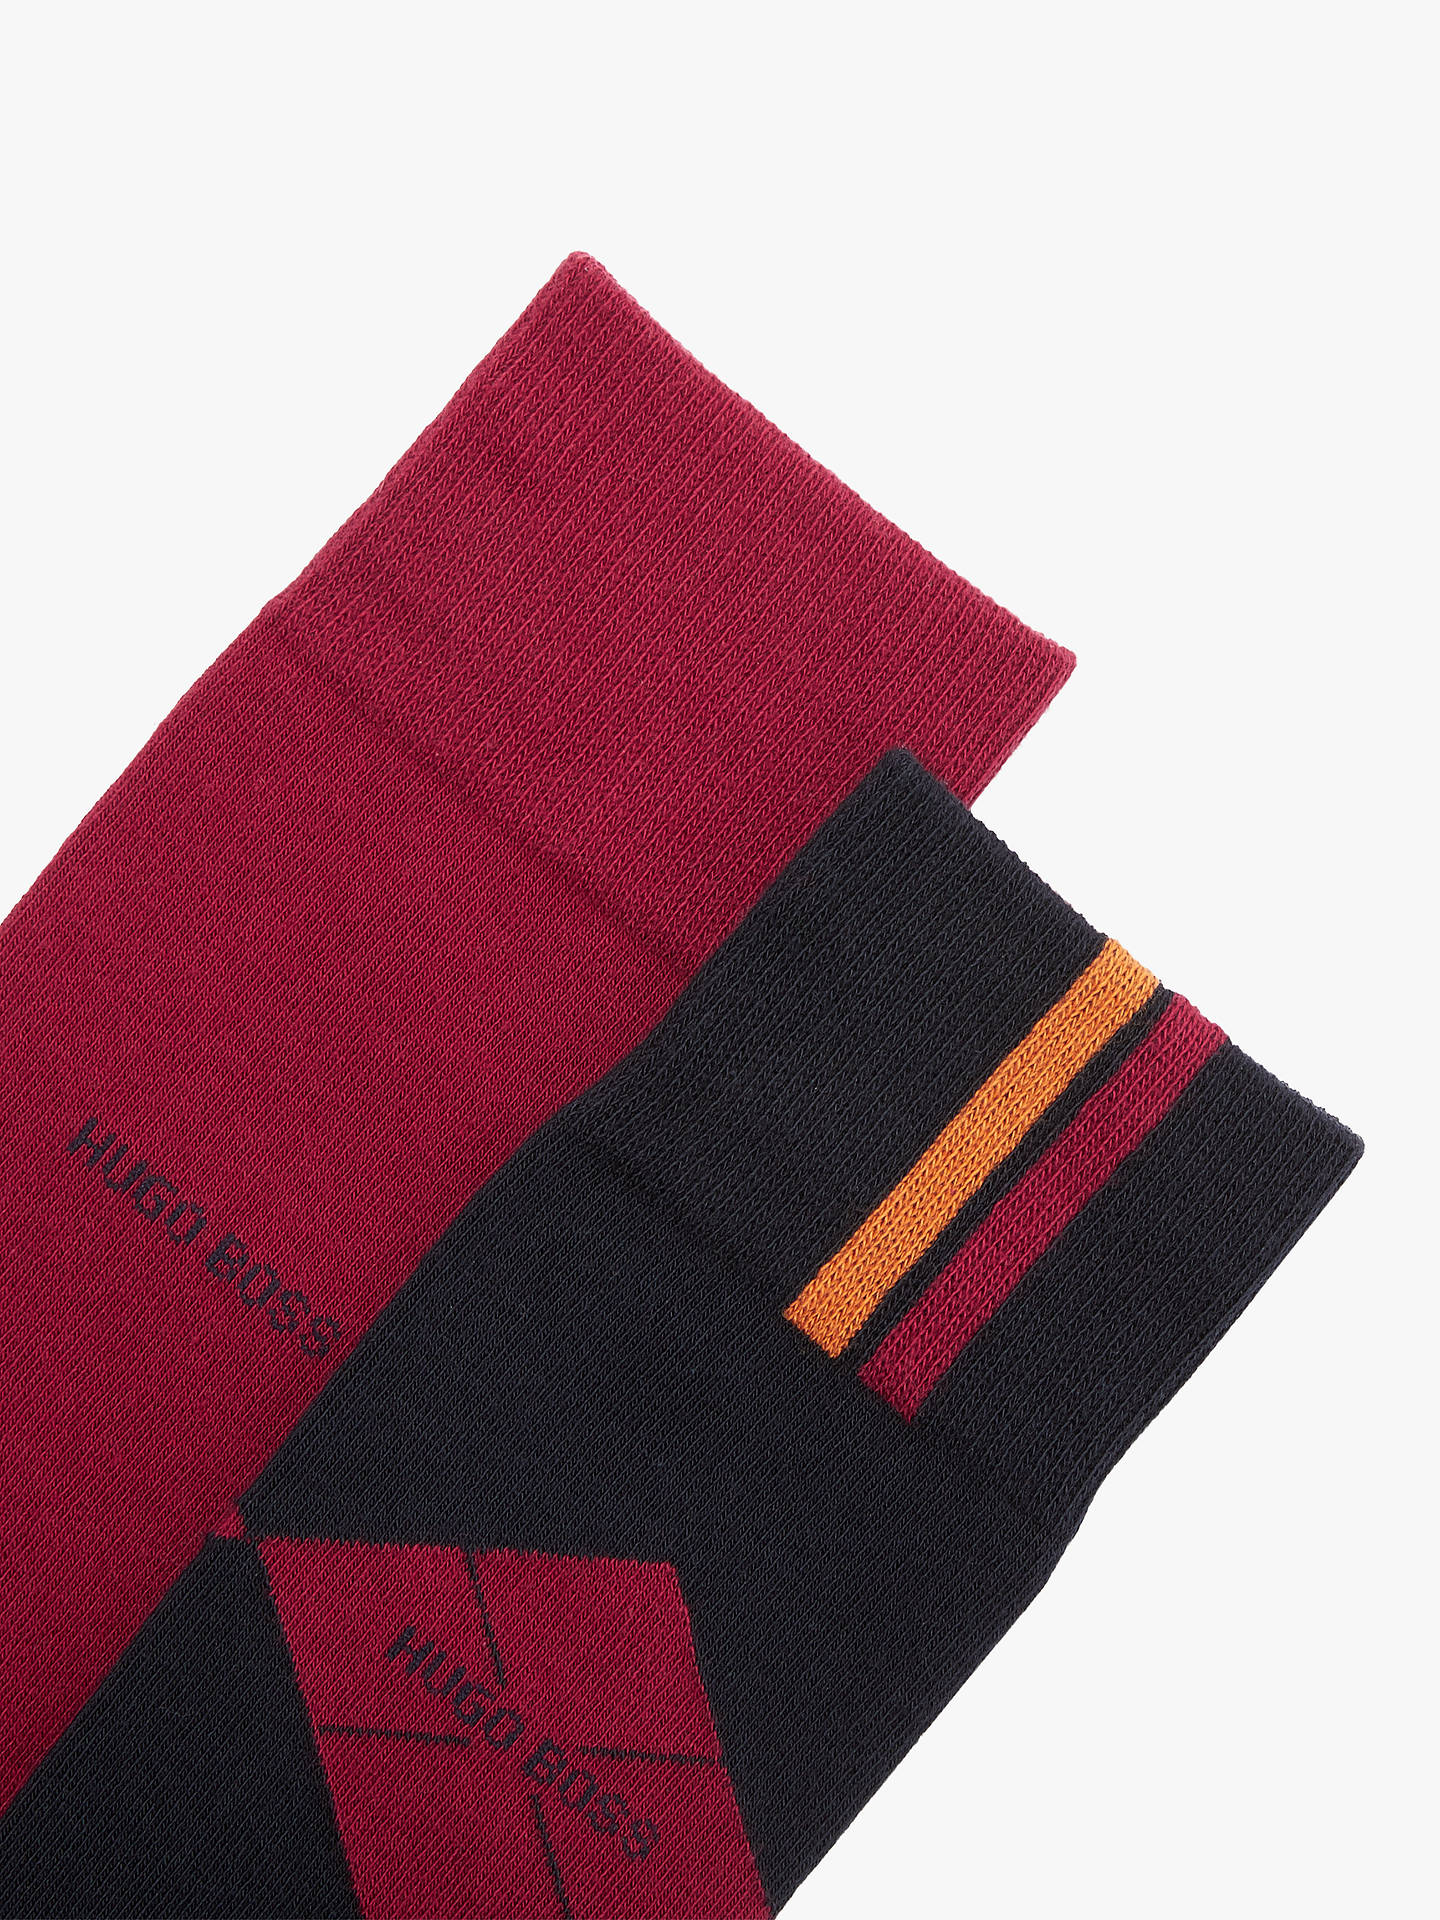 BuyBOSS Plain Diamond Socks, Pack of 2, Red/Black, M Online at johnlewis.com